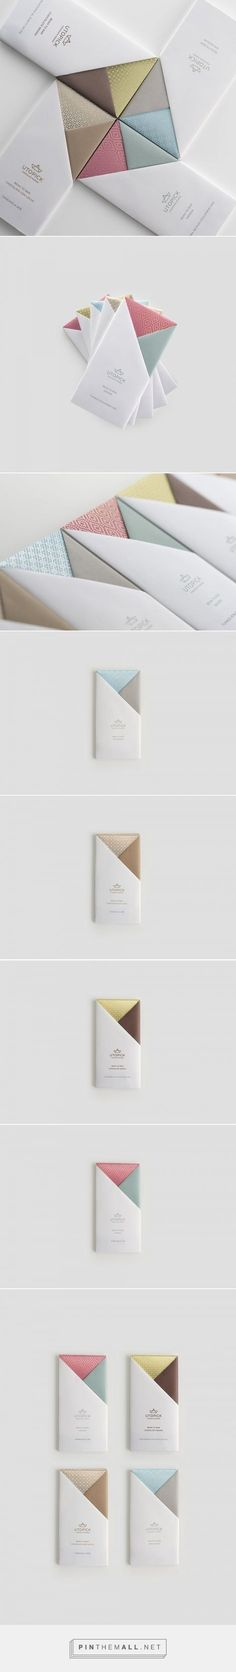 A Lovely Chocolate Bar that's Packaged with Origami / Designed by Lavernia & Cienfuegos